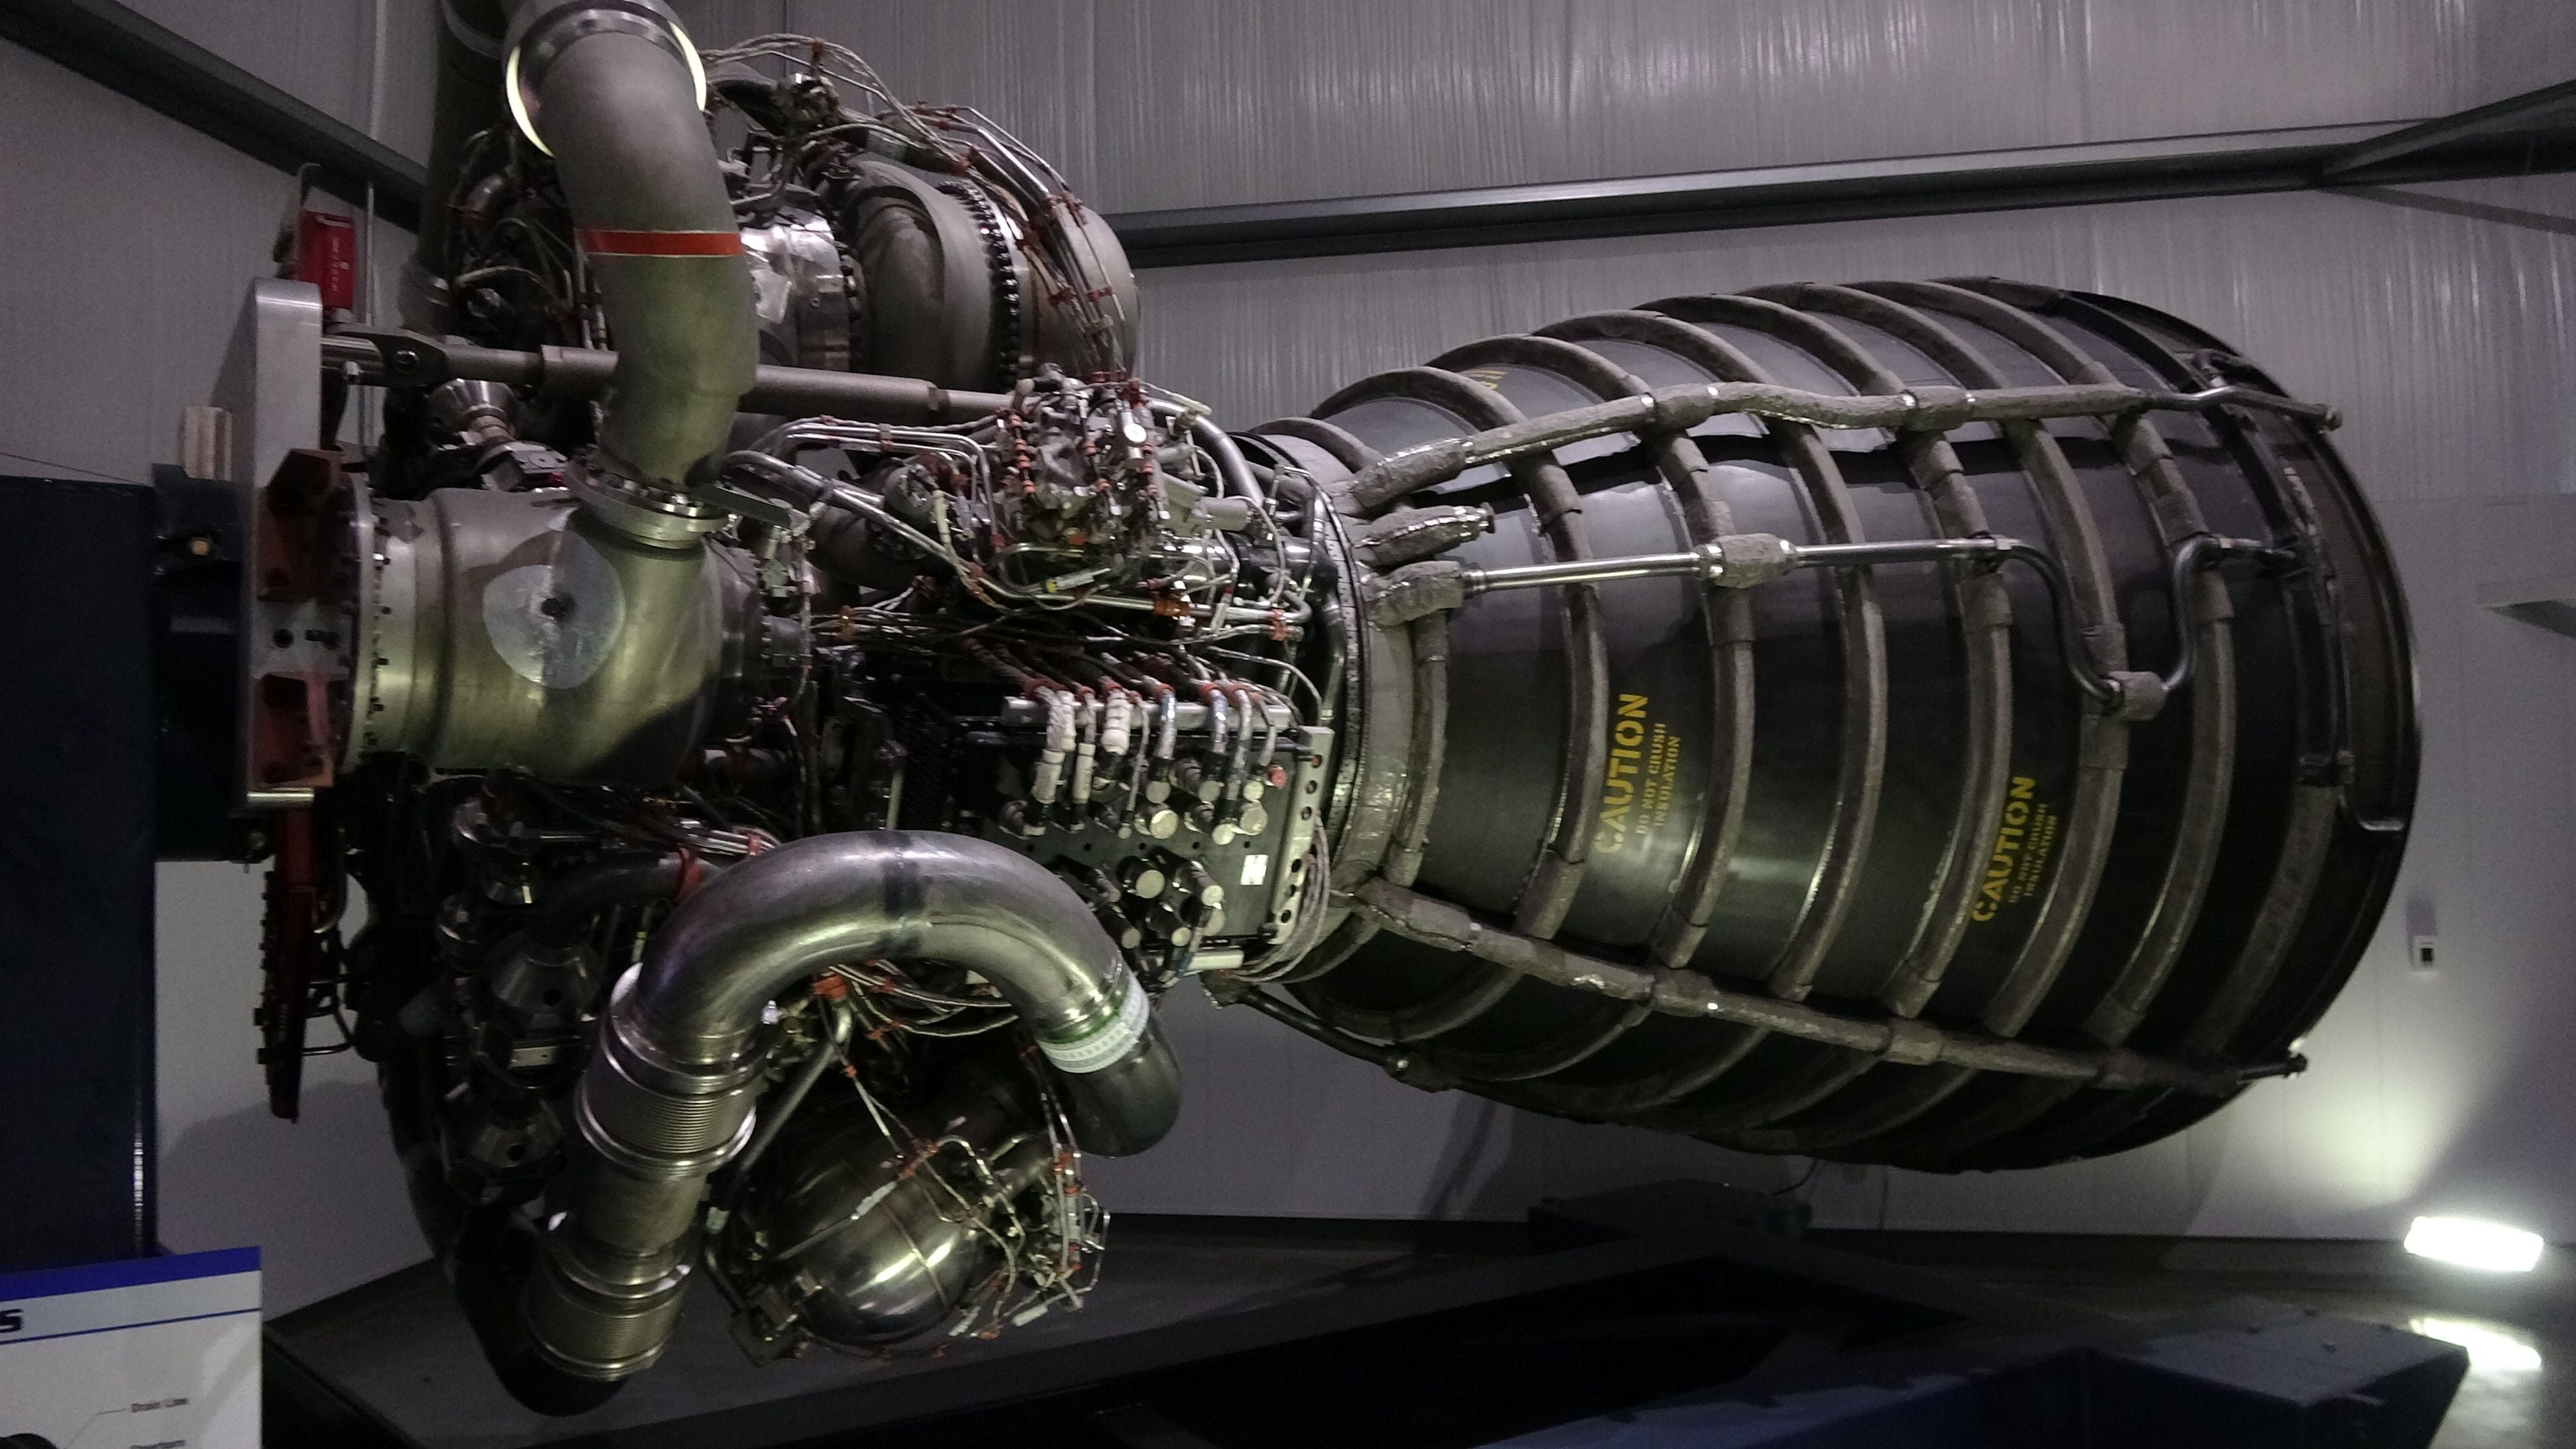 Motor Vehicle in Space Shuttle Endeavour